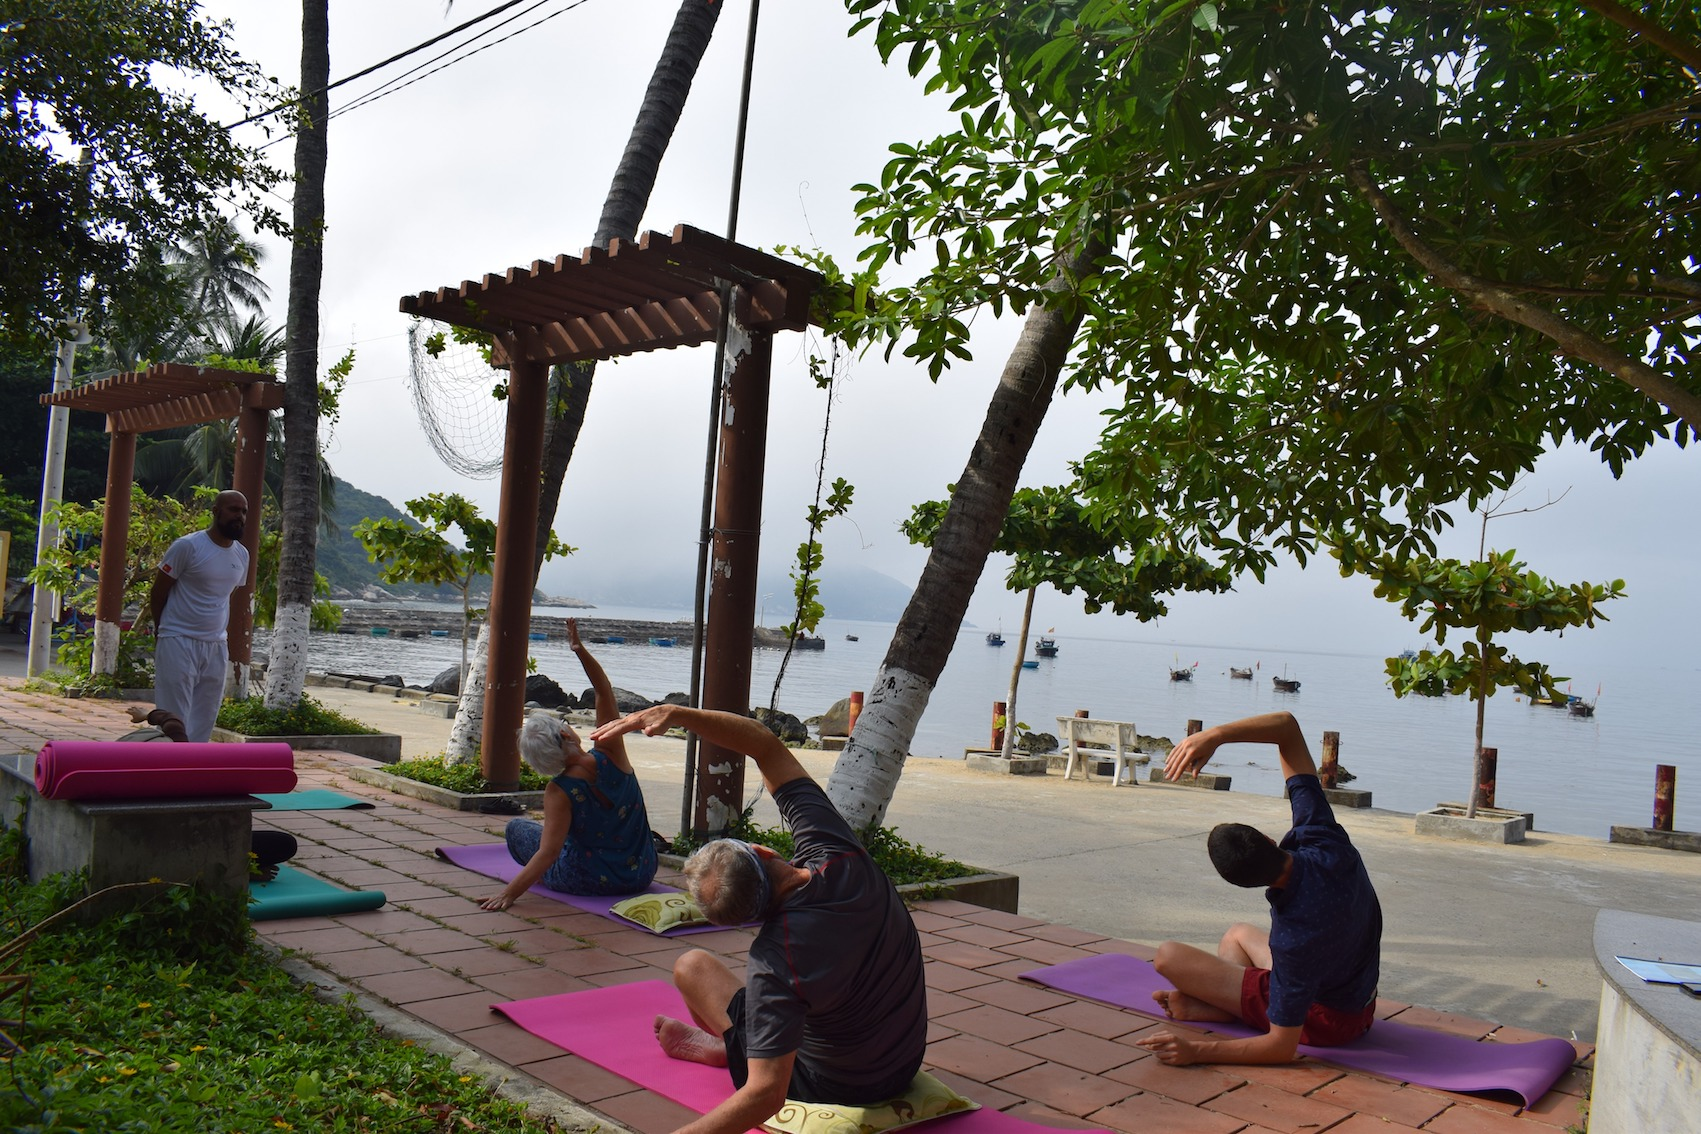 Mindful-Living-Yoga-Retreat-Cham-Island.jpg